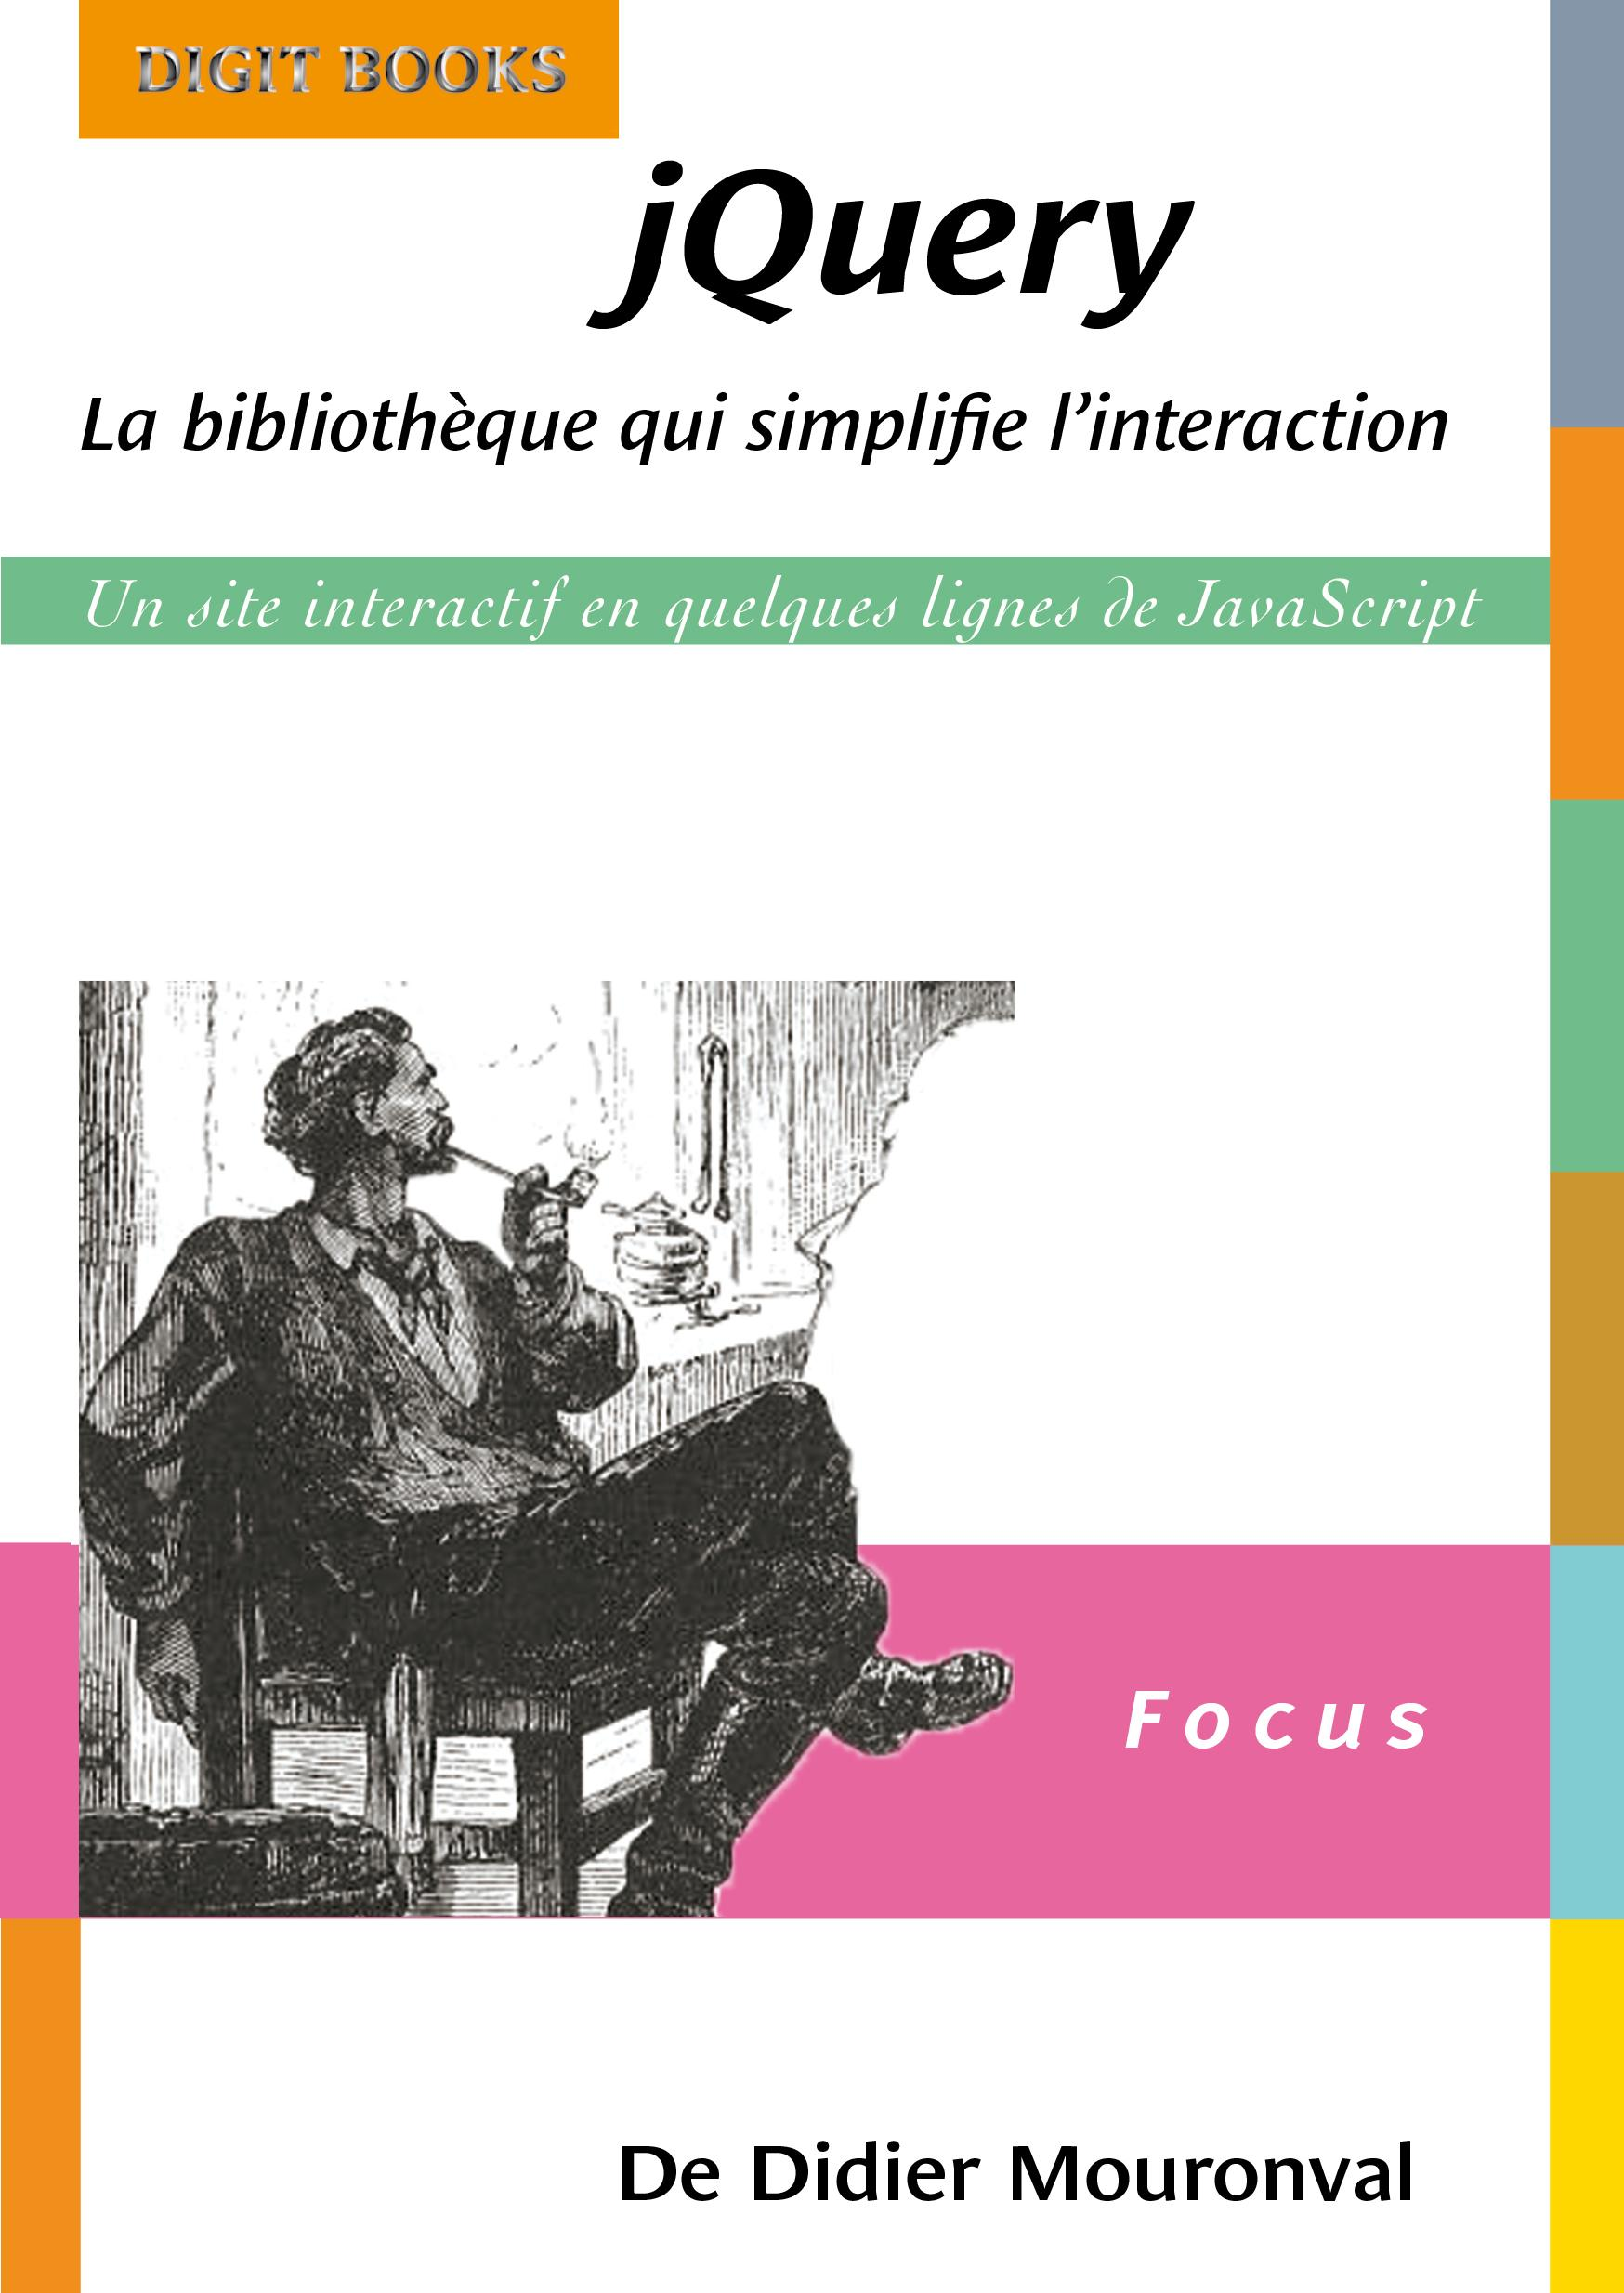 jQuery La bibliothèque qui simplifie l'interaction, UN SITE INTERACTIF EN QUELQUES LIGNES DE JAVASCRIPT